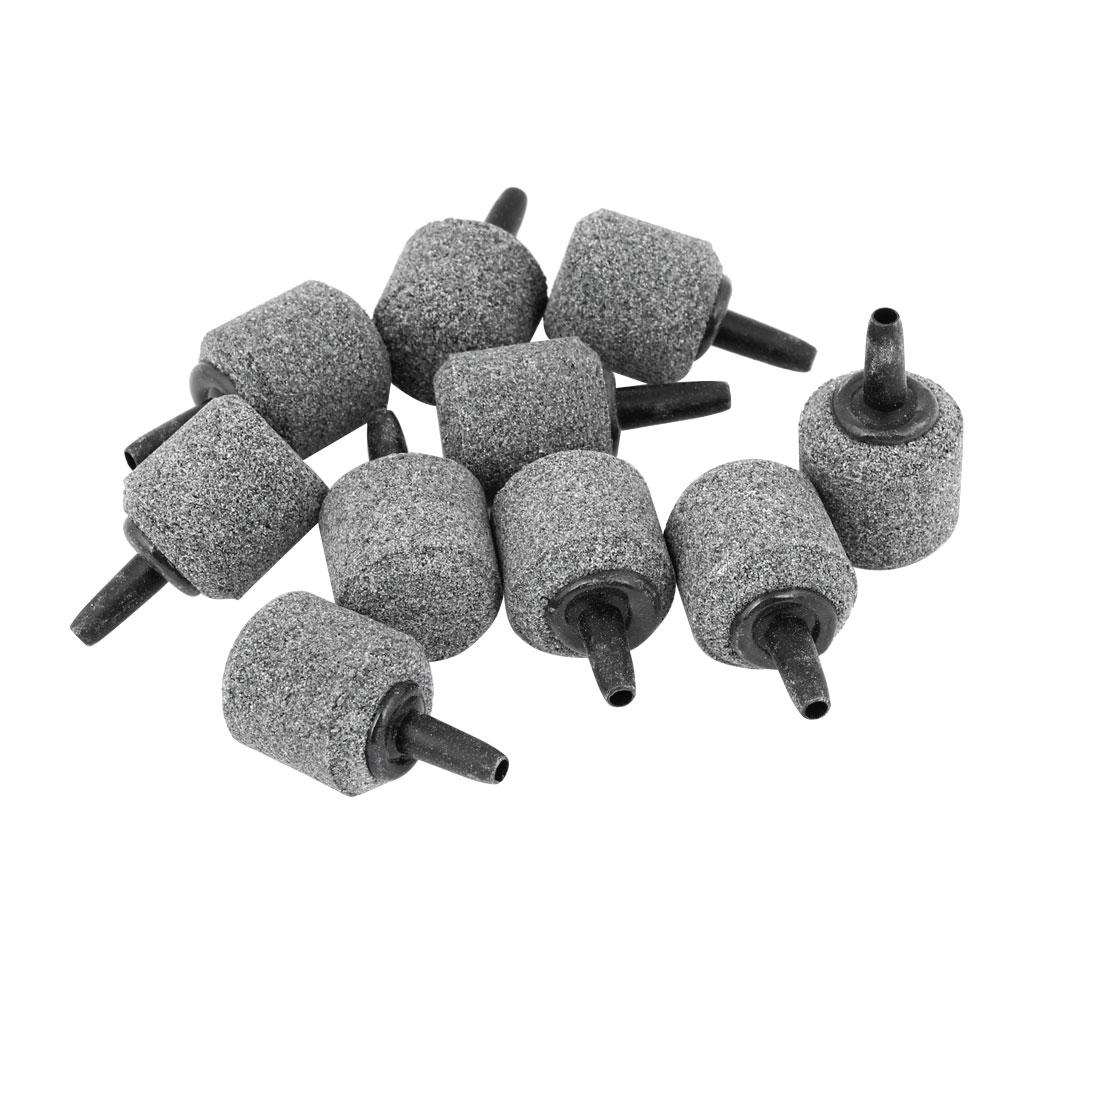 10 Pcs Gray 21mm x 22mm Cylinder Mini Bubble Air Stone for Aquarium